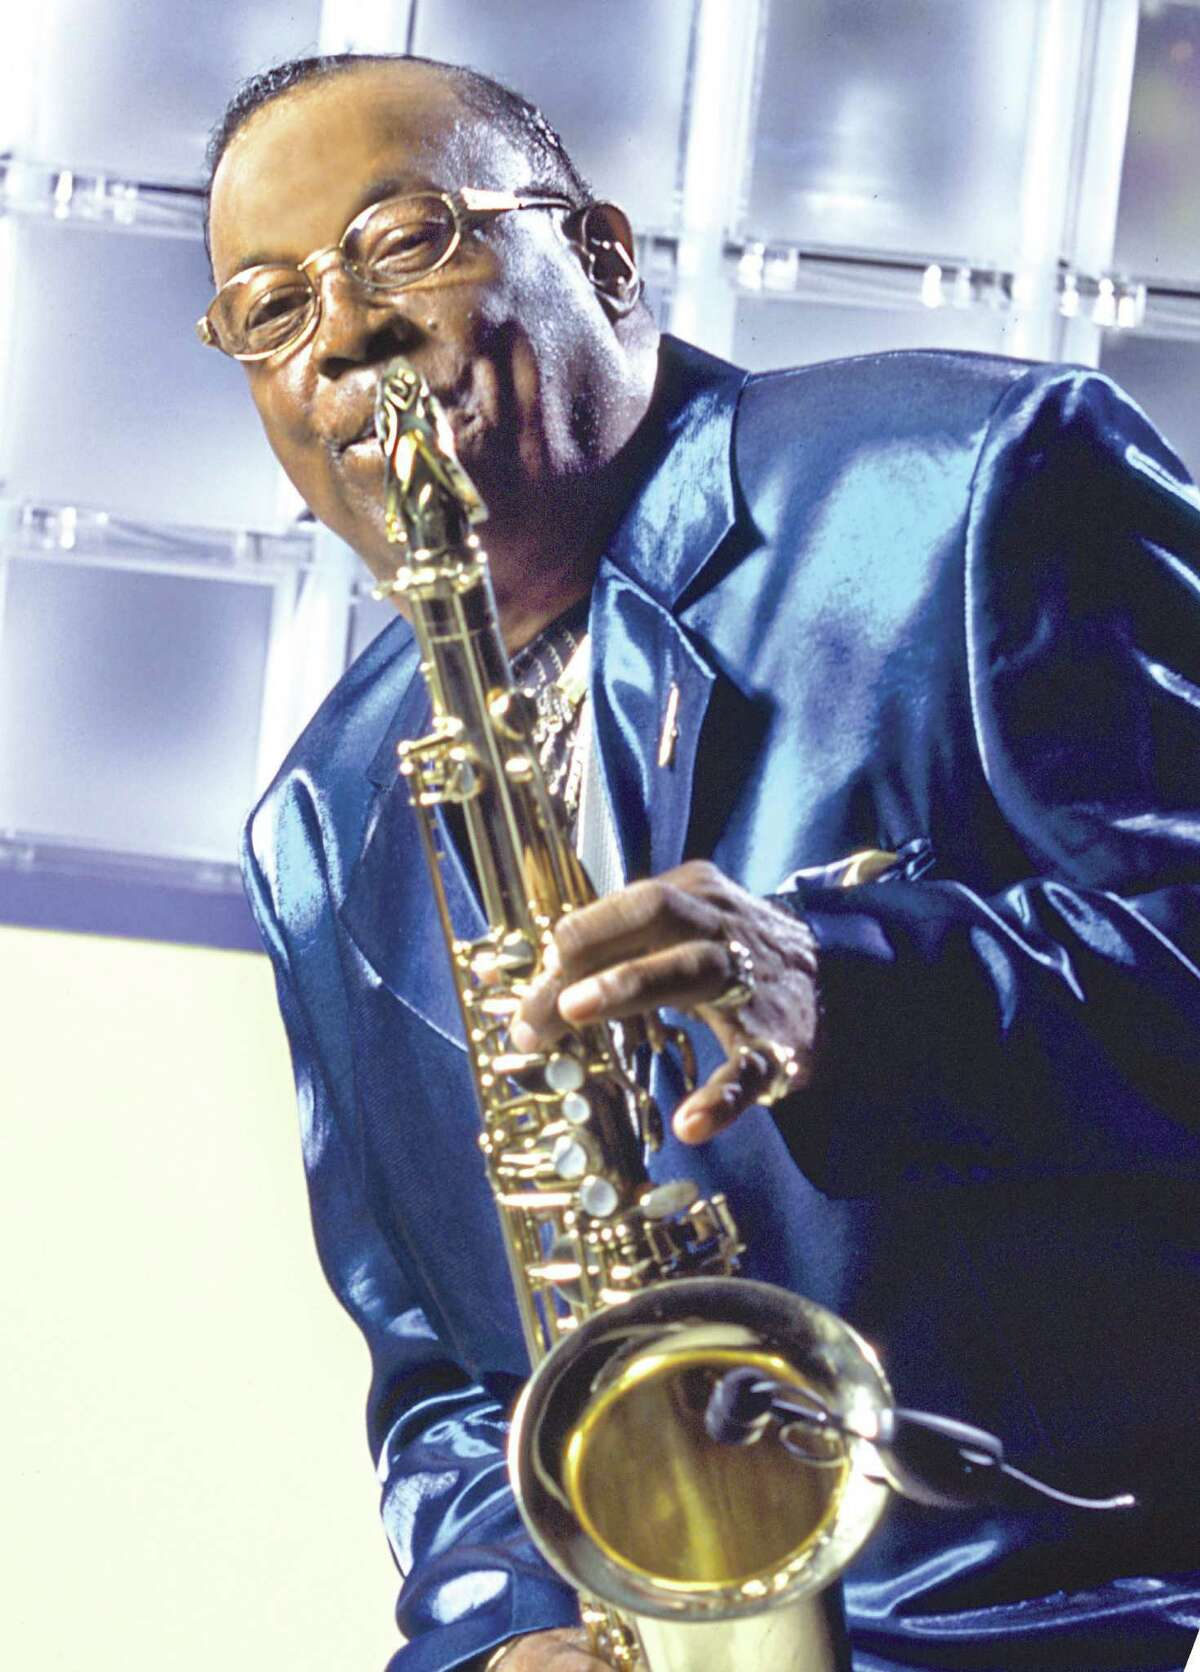 Grady Gaines & The Texas Upsetters will perform on Sept. 19, 2004 for a free concert at Miller Outdoor Theatre.